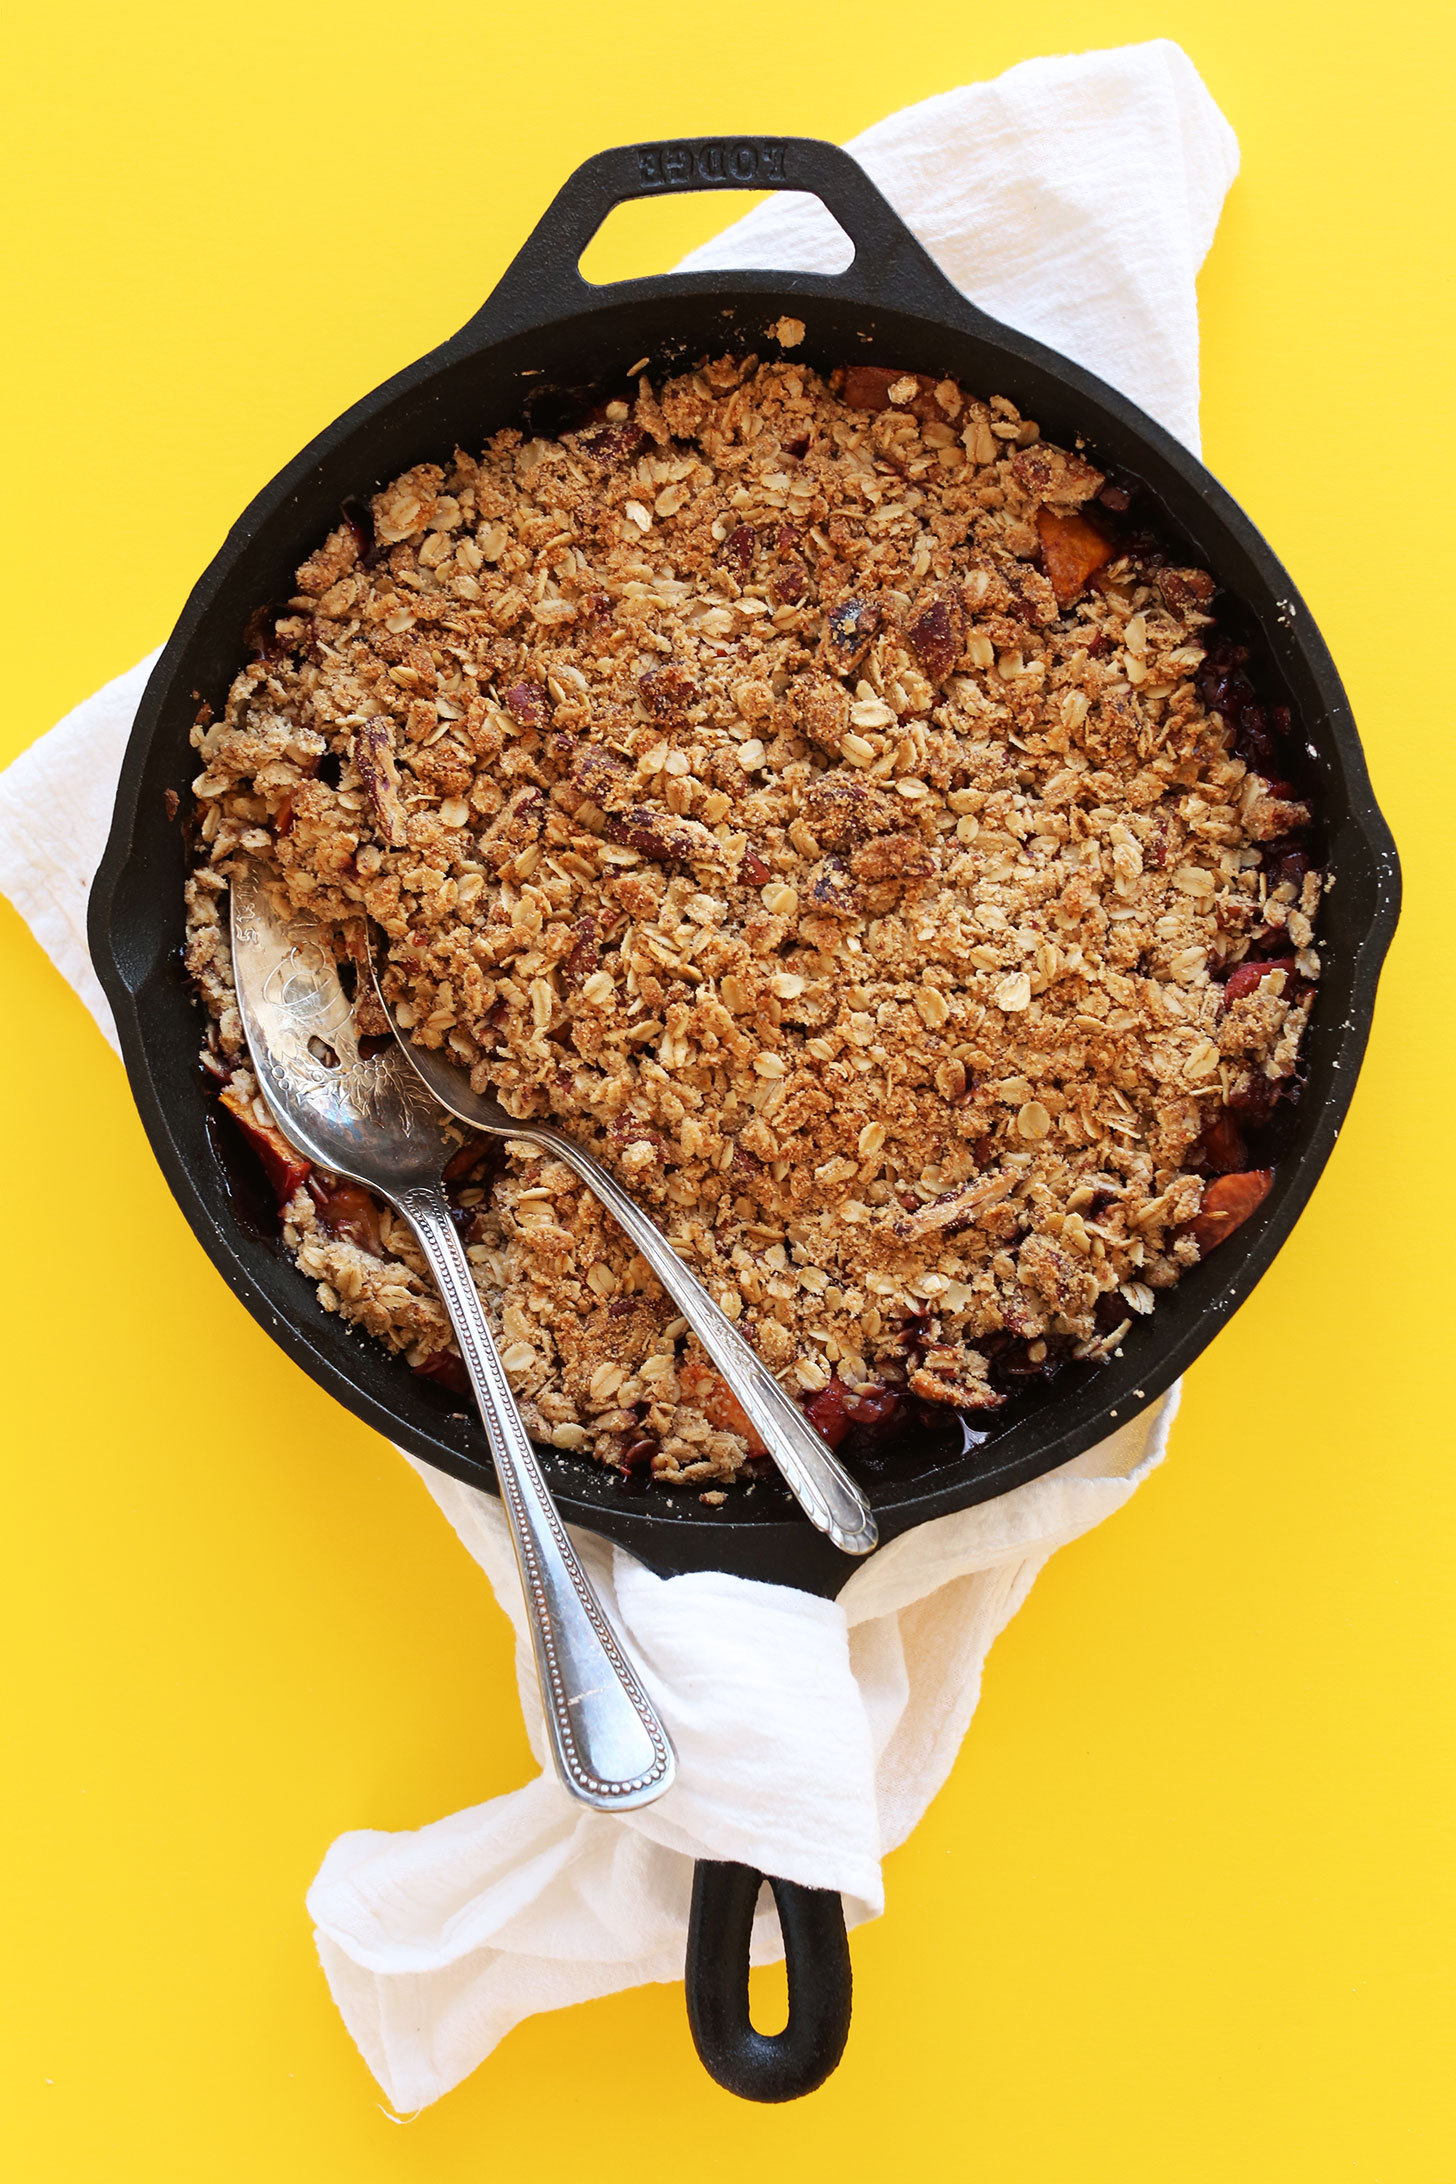 Cast-iron skillet filled with gluten-free vegan summer Peach Crisp